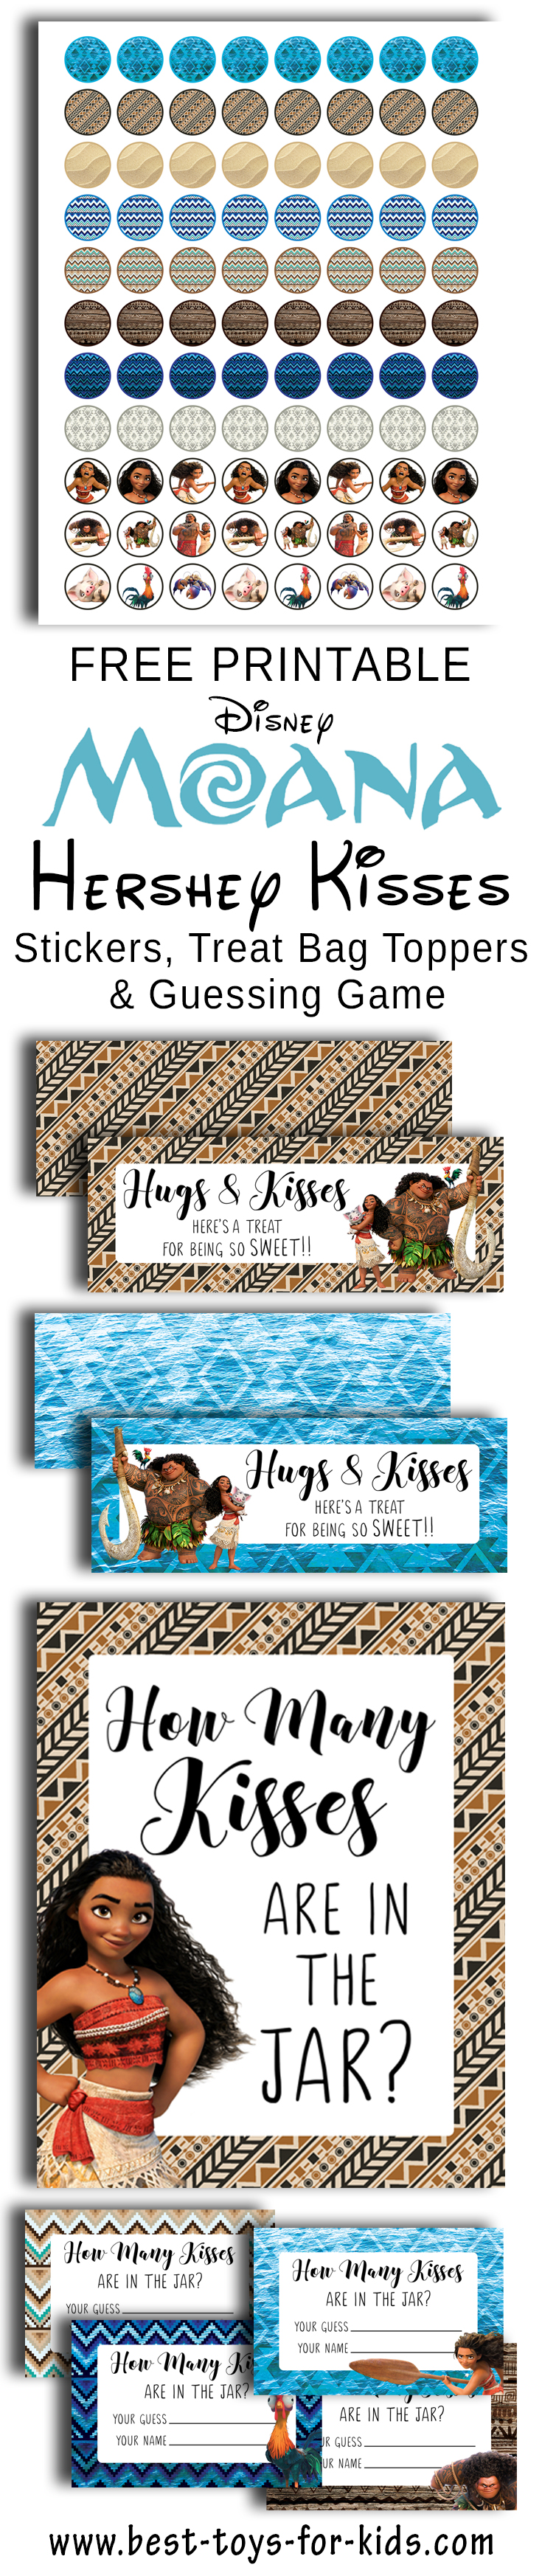 Free Printable Disney Moana Hershey Kiss Stickers, Treat ag Toppers And Guess How Many Kisses In The Jar? Party Game